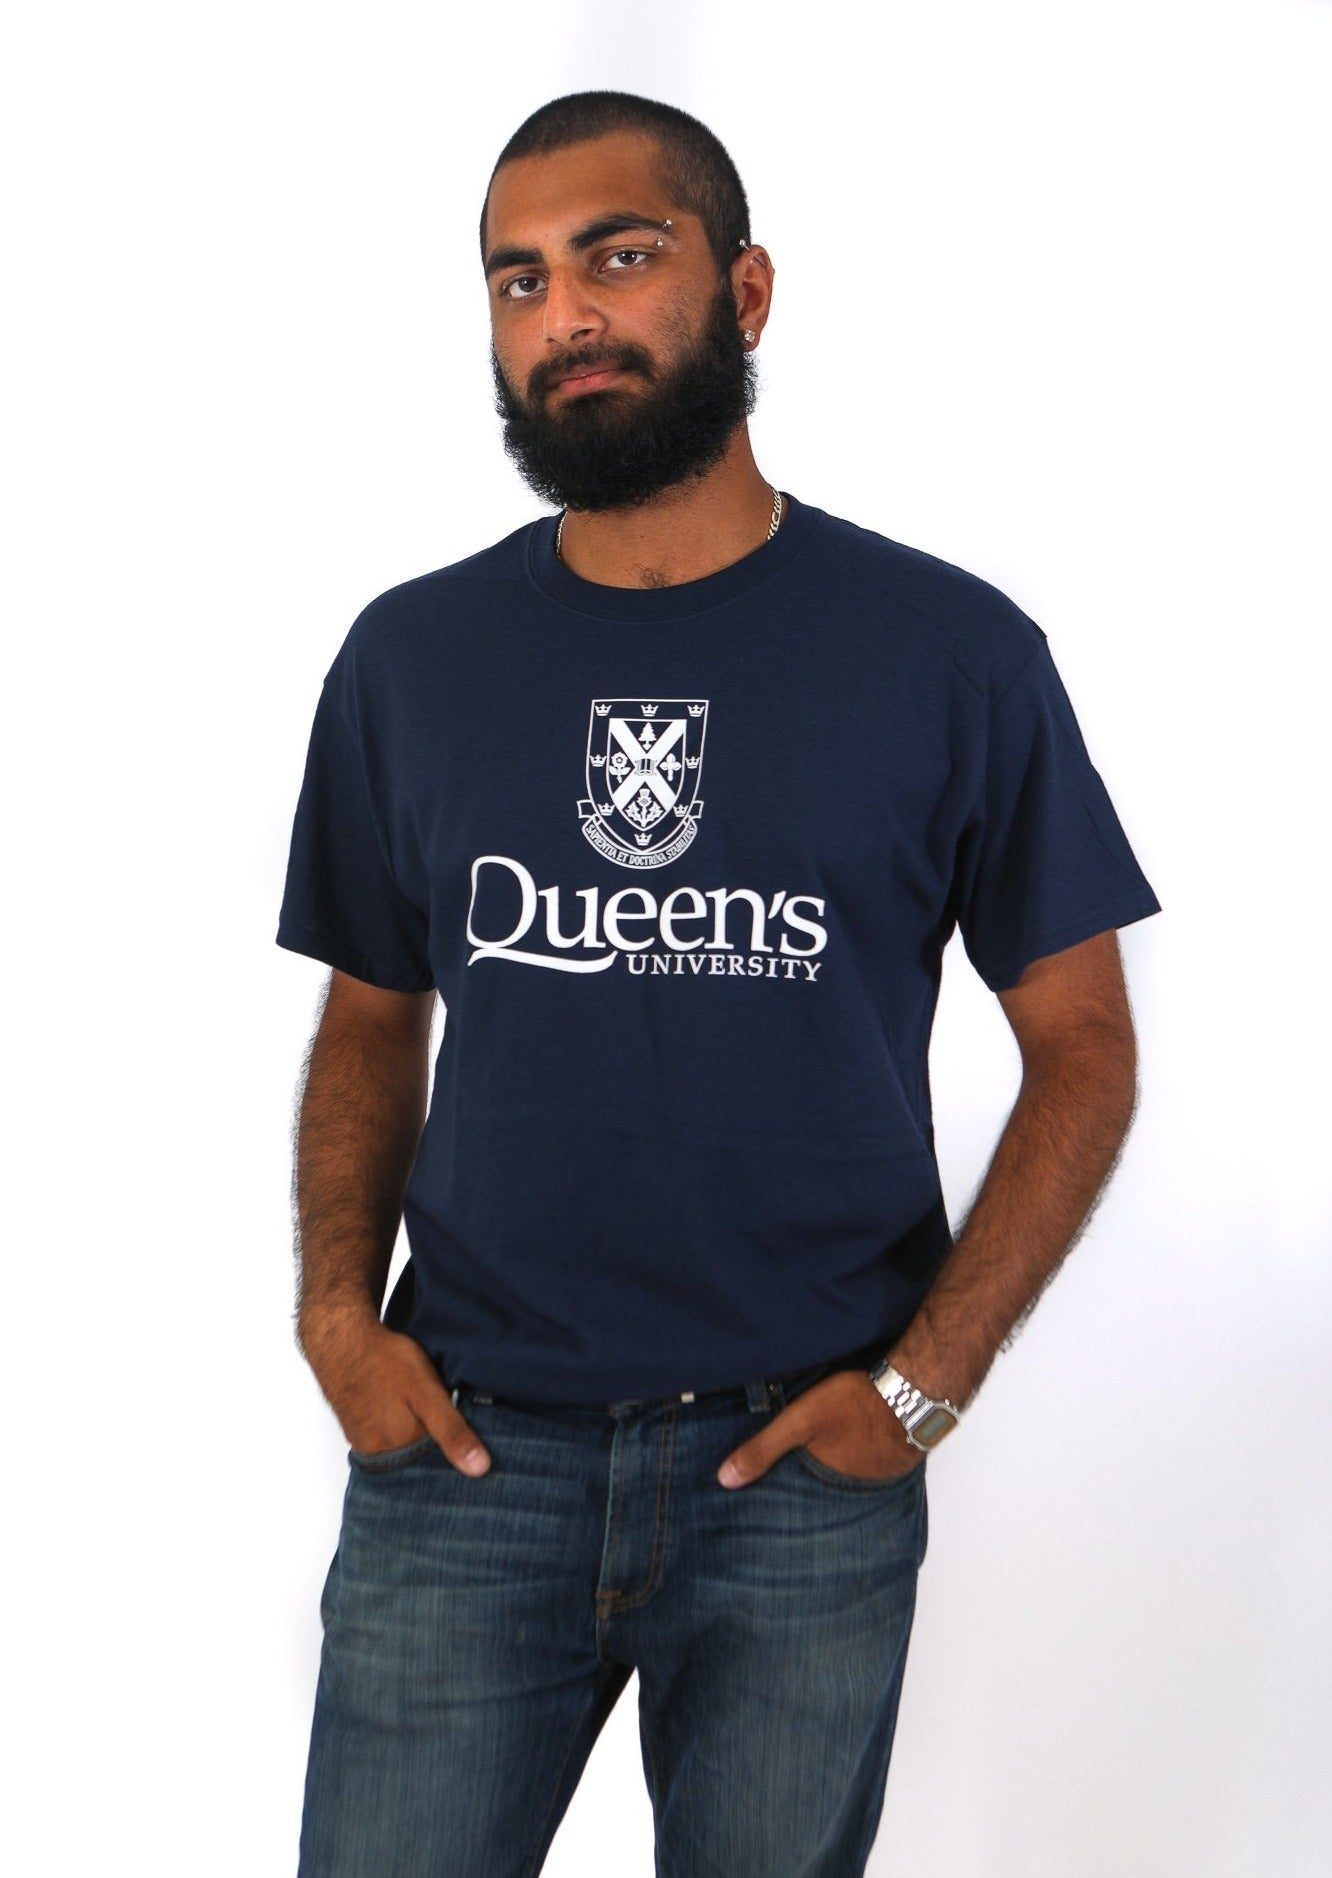 Navy tshirt with white queens crest